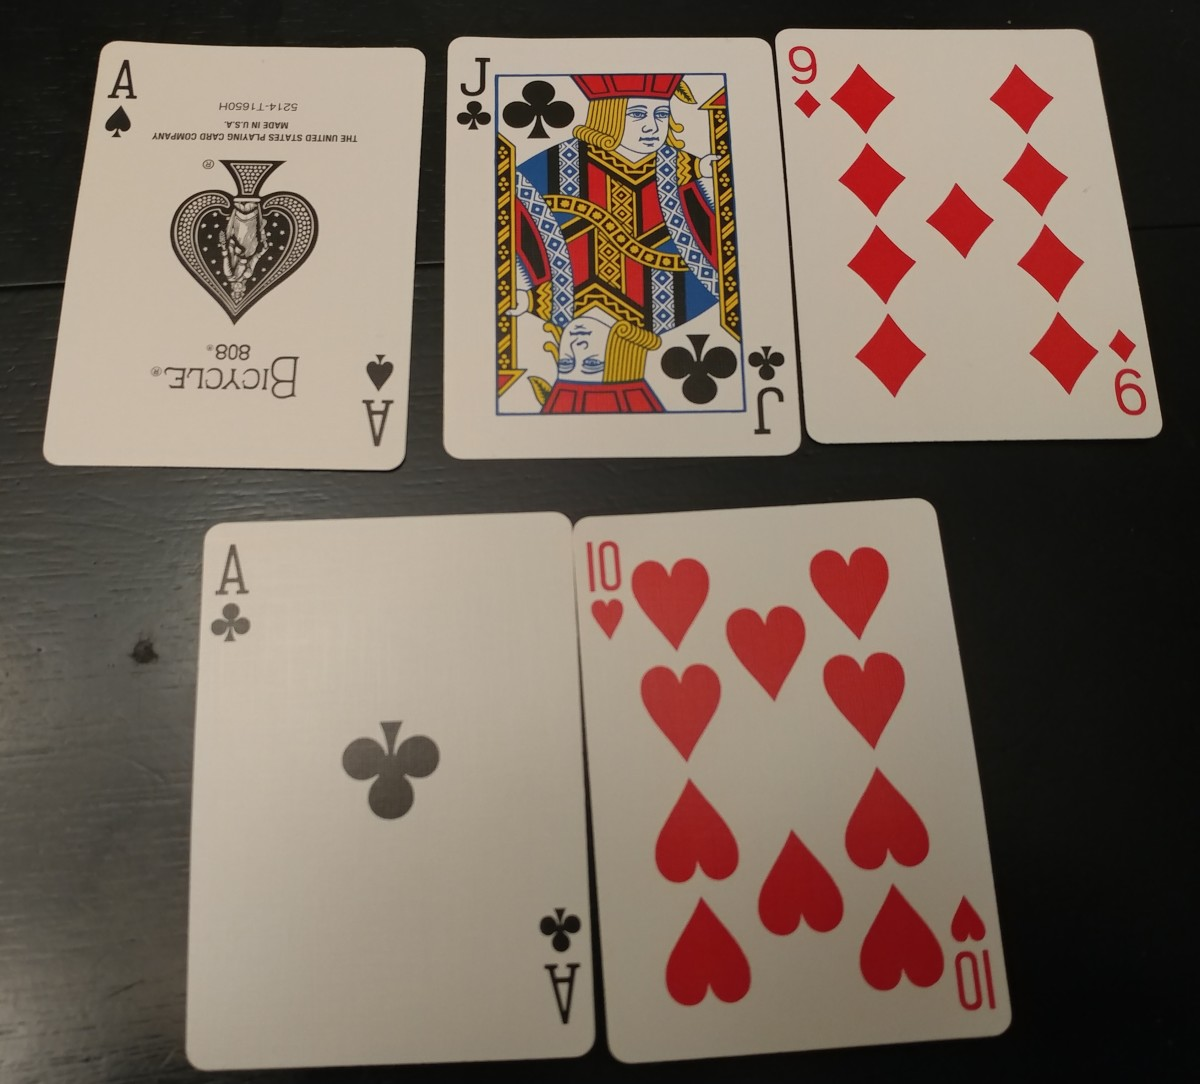 This is a single pair hand.